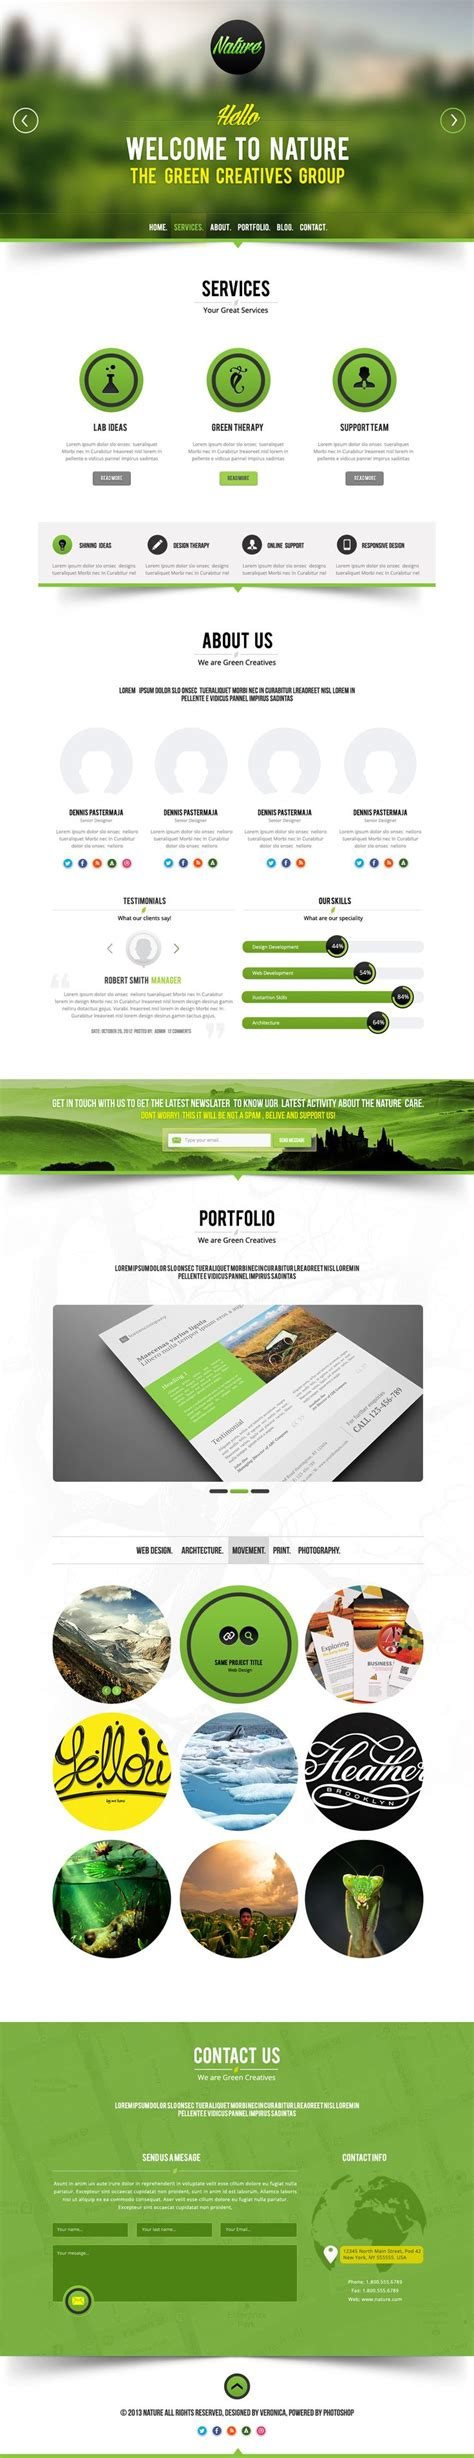 web layout design php 49 best web templates images on pinterest web layout